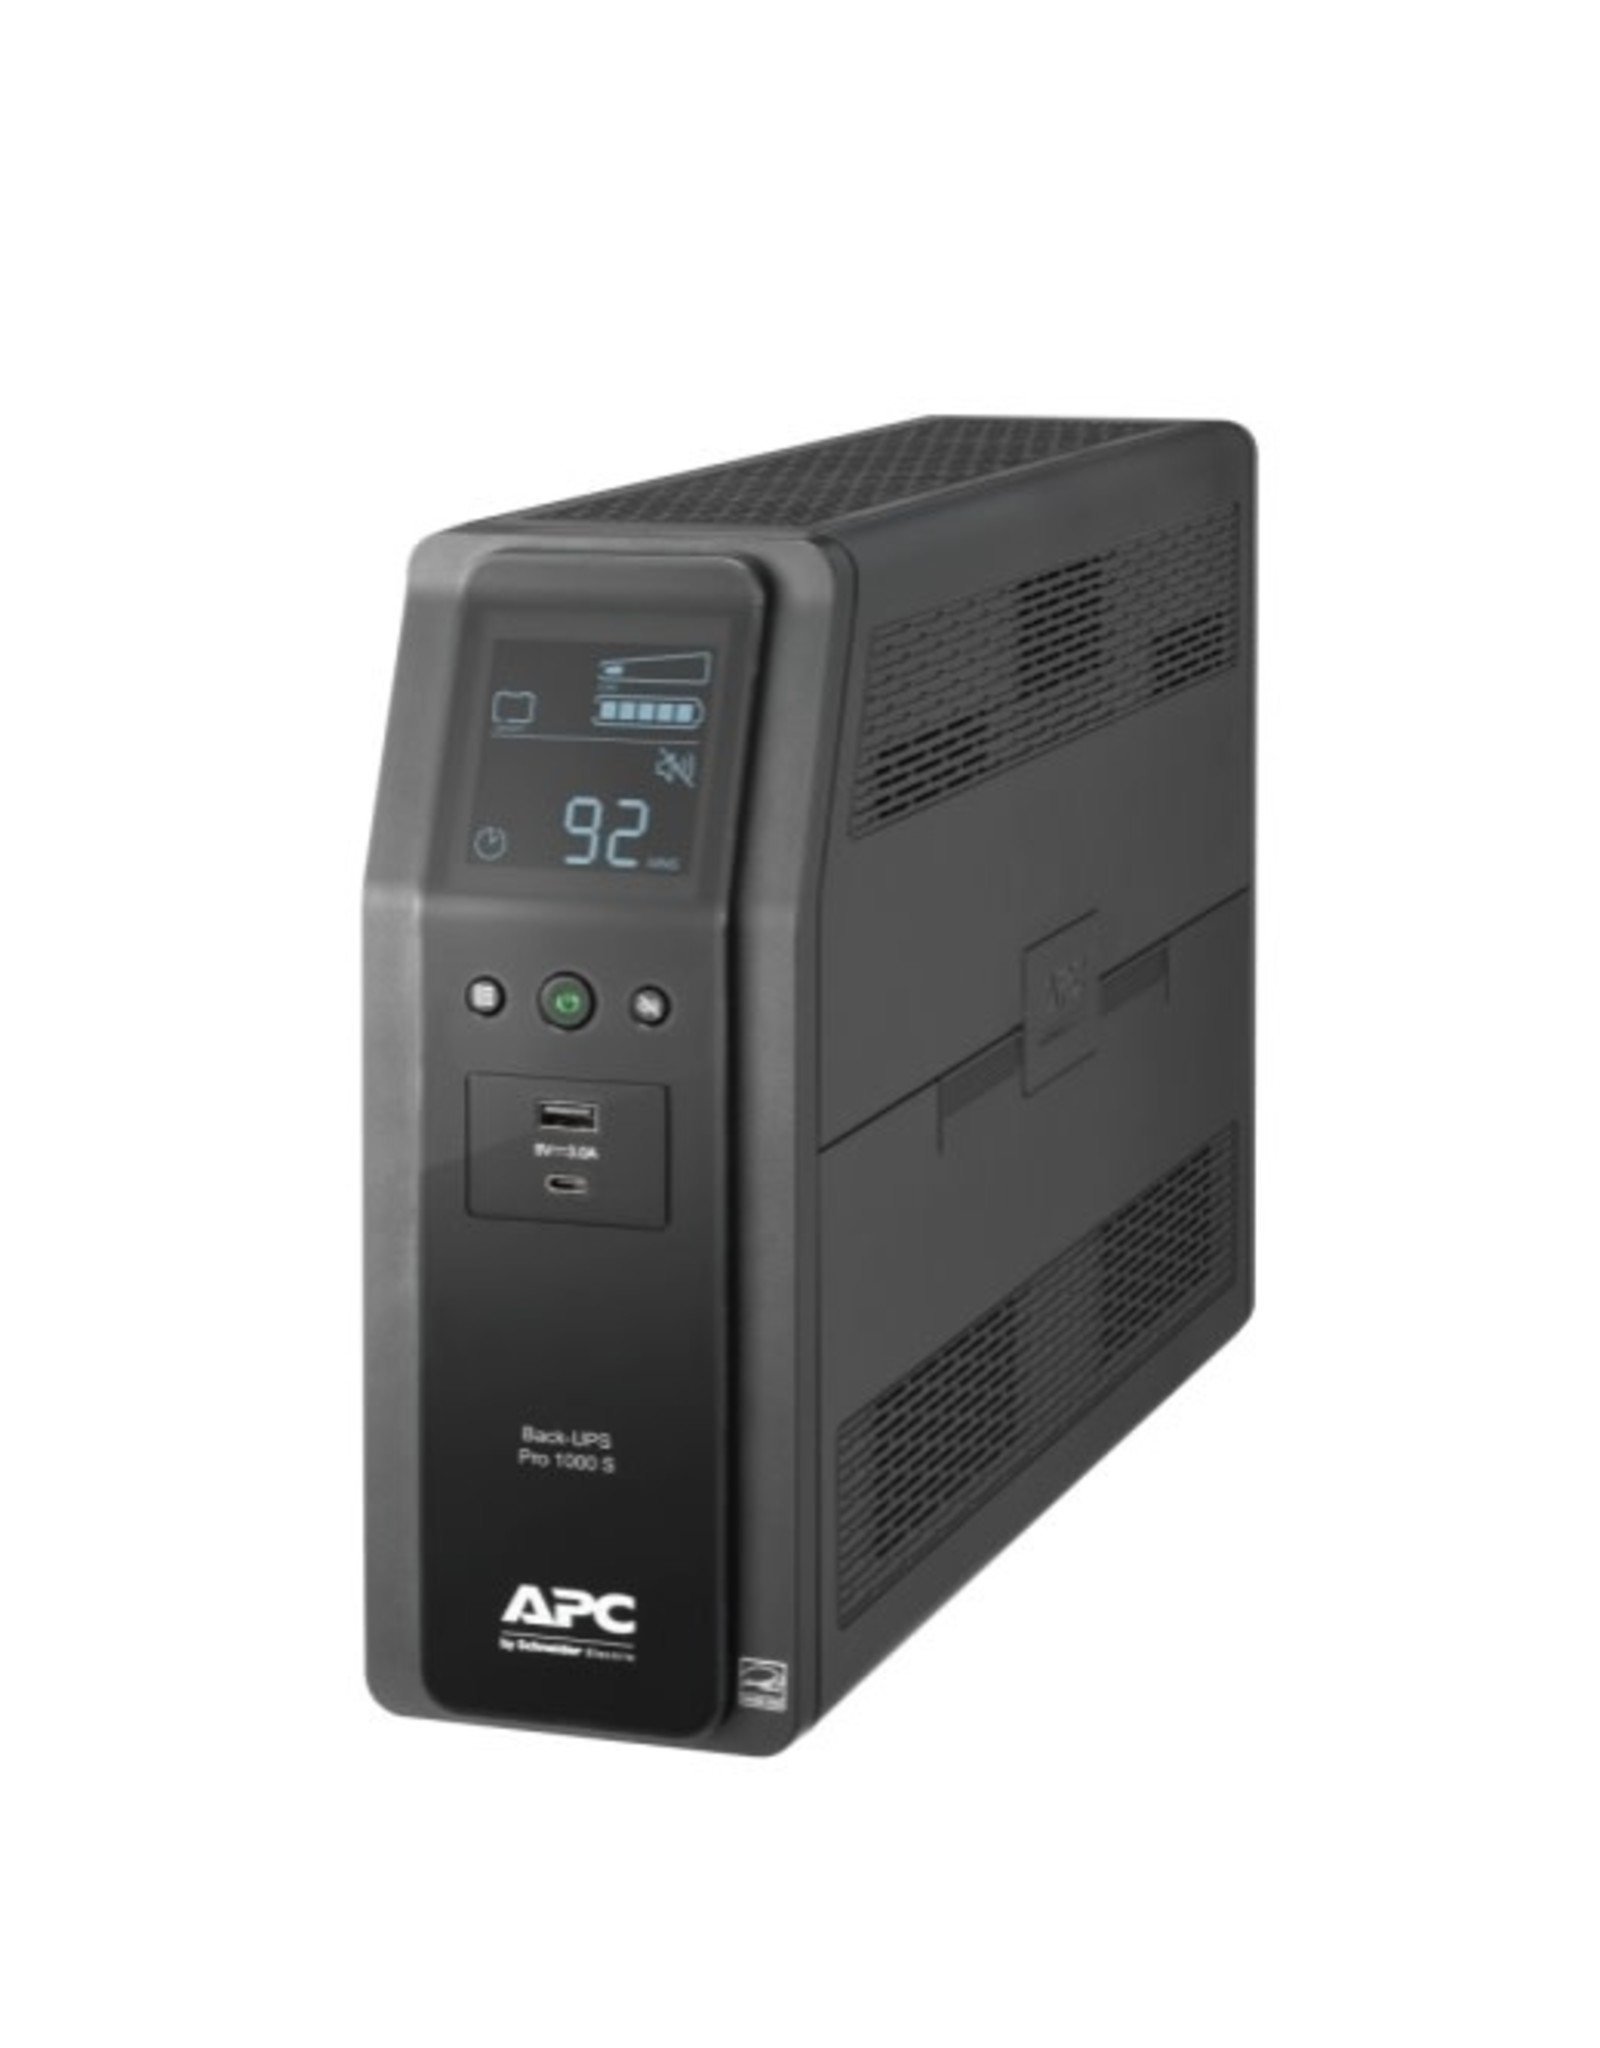 APC APC Back-UPS PRO BR 1000VA, SineWave, 10 Outlets, 2 USB Charging Ports, AVR, LCD interface